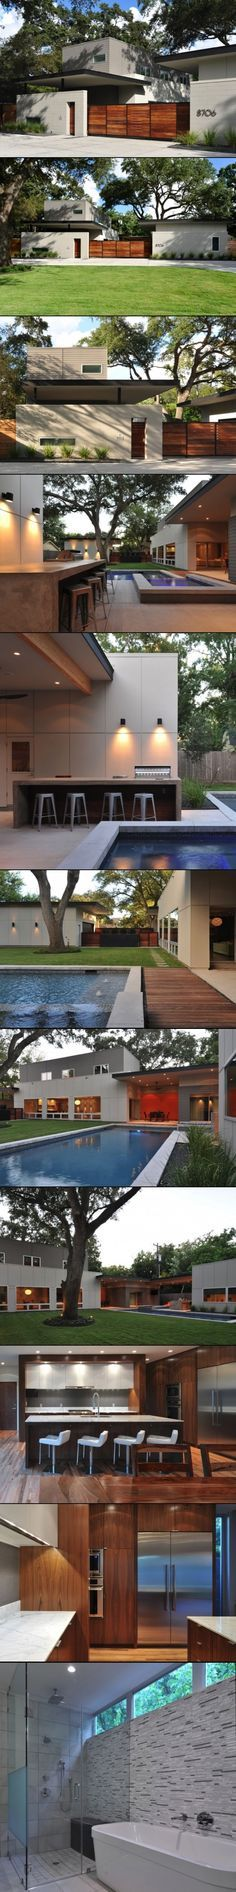 Architectural house projects